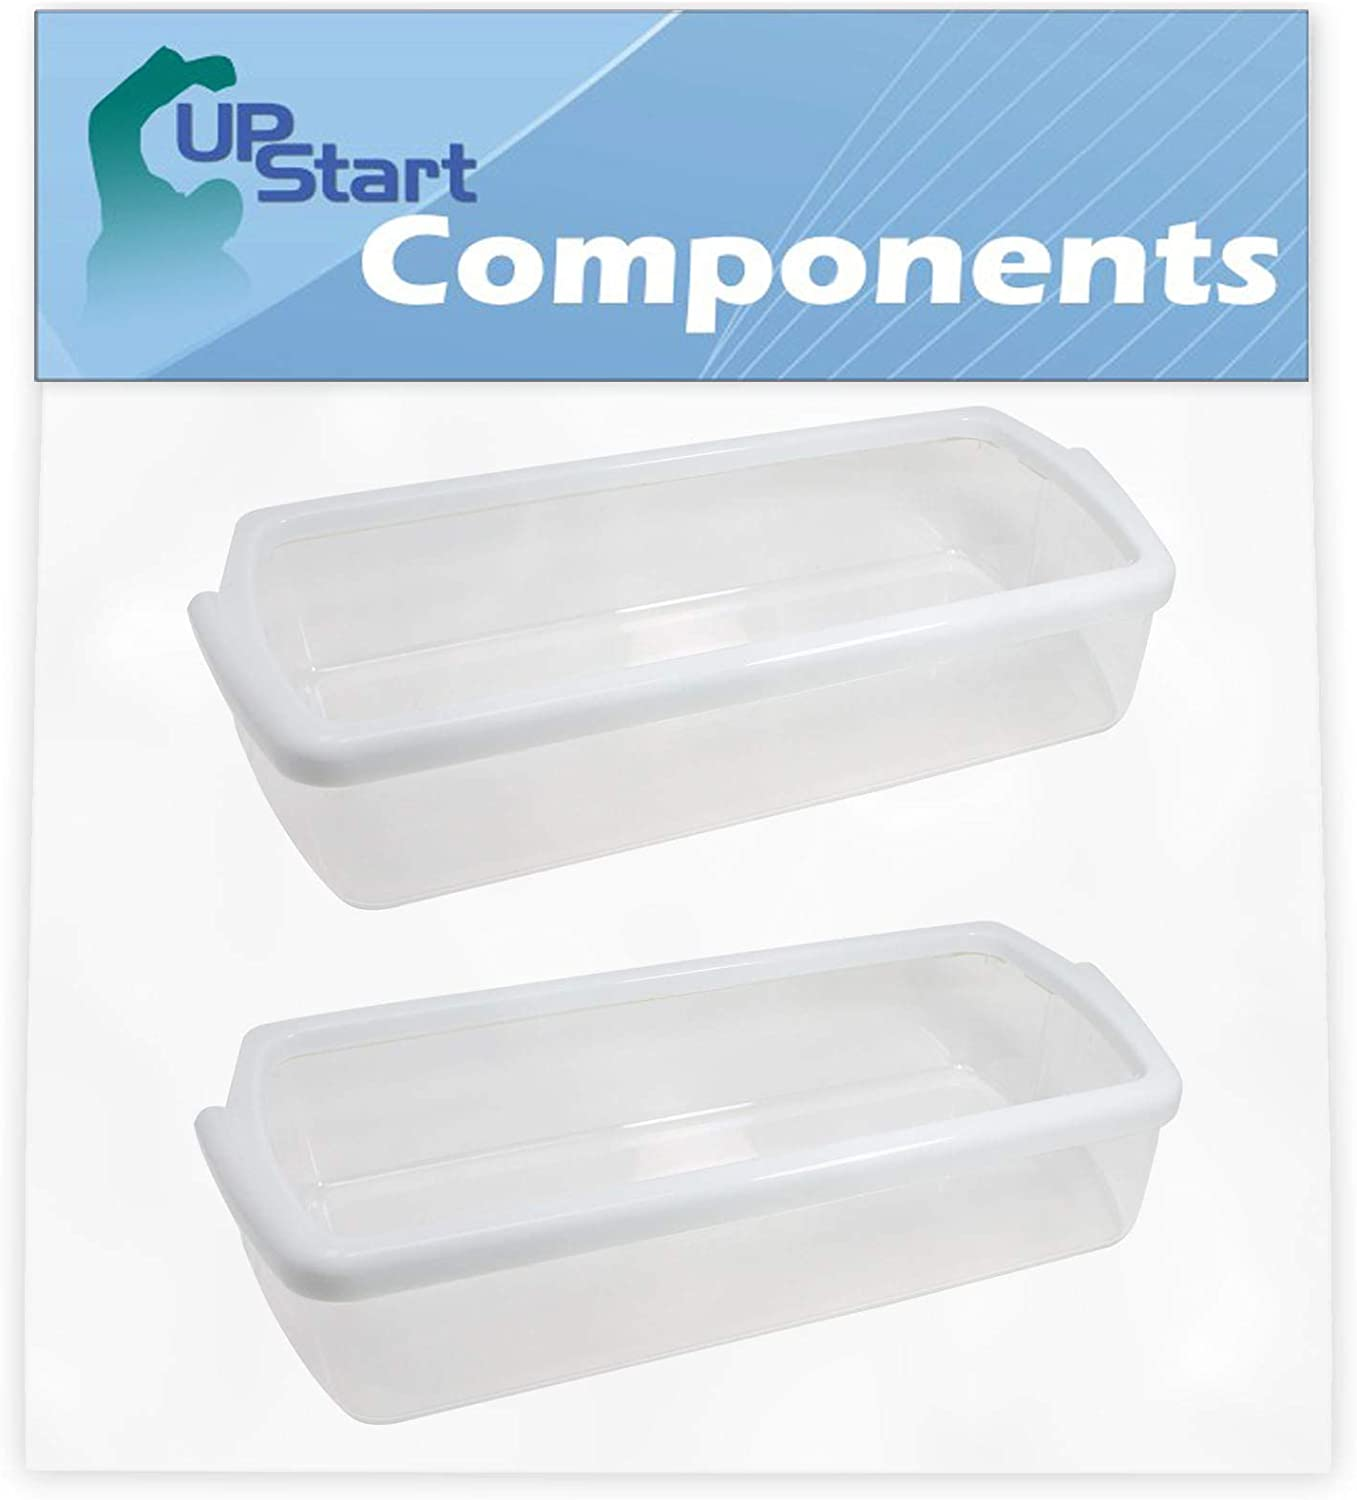 2-Pack W10321304 Refrigerator Door Bin Replacement for Whirlpool ED5PVEXWS07 Refrigerator - Compatible with WPW10321304 Door Bin